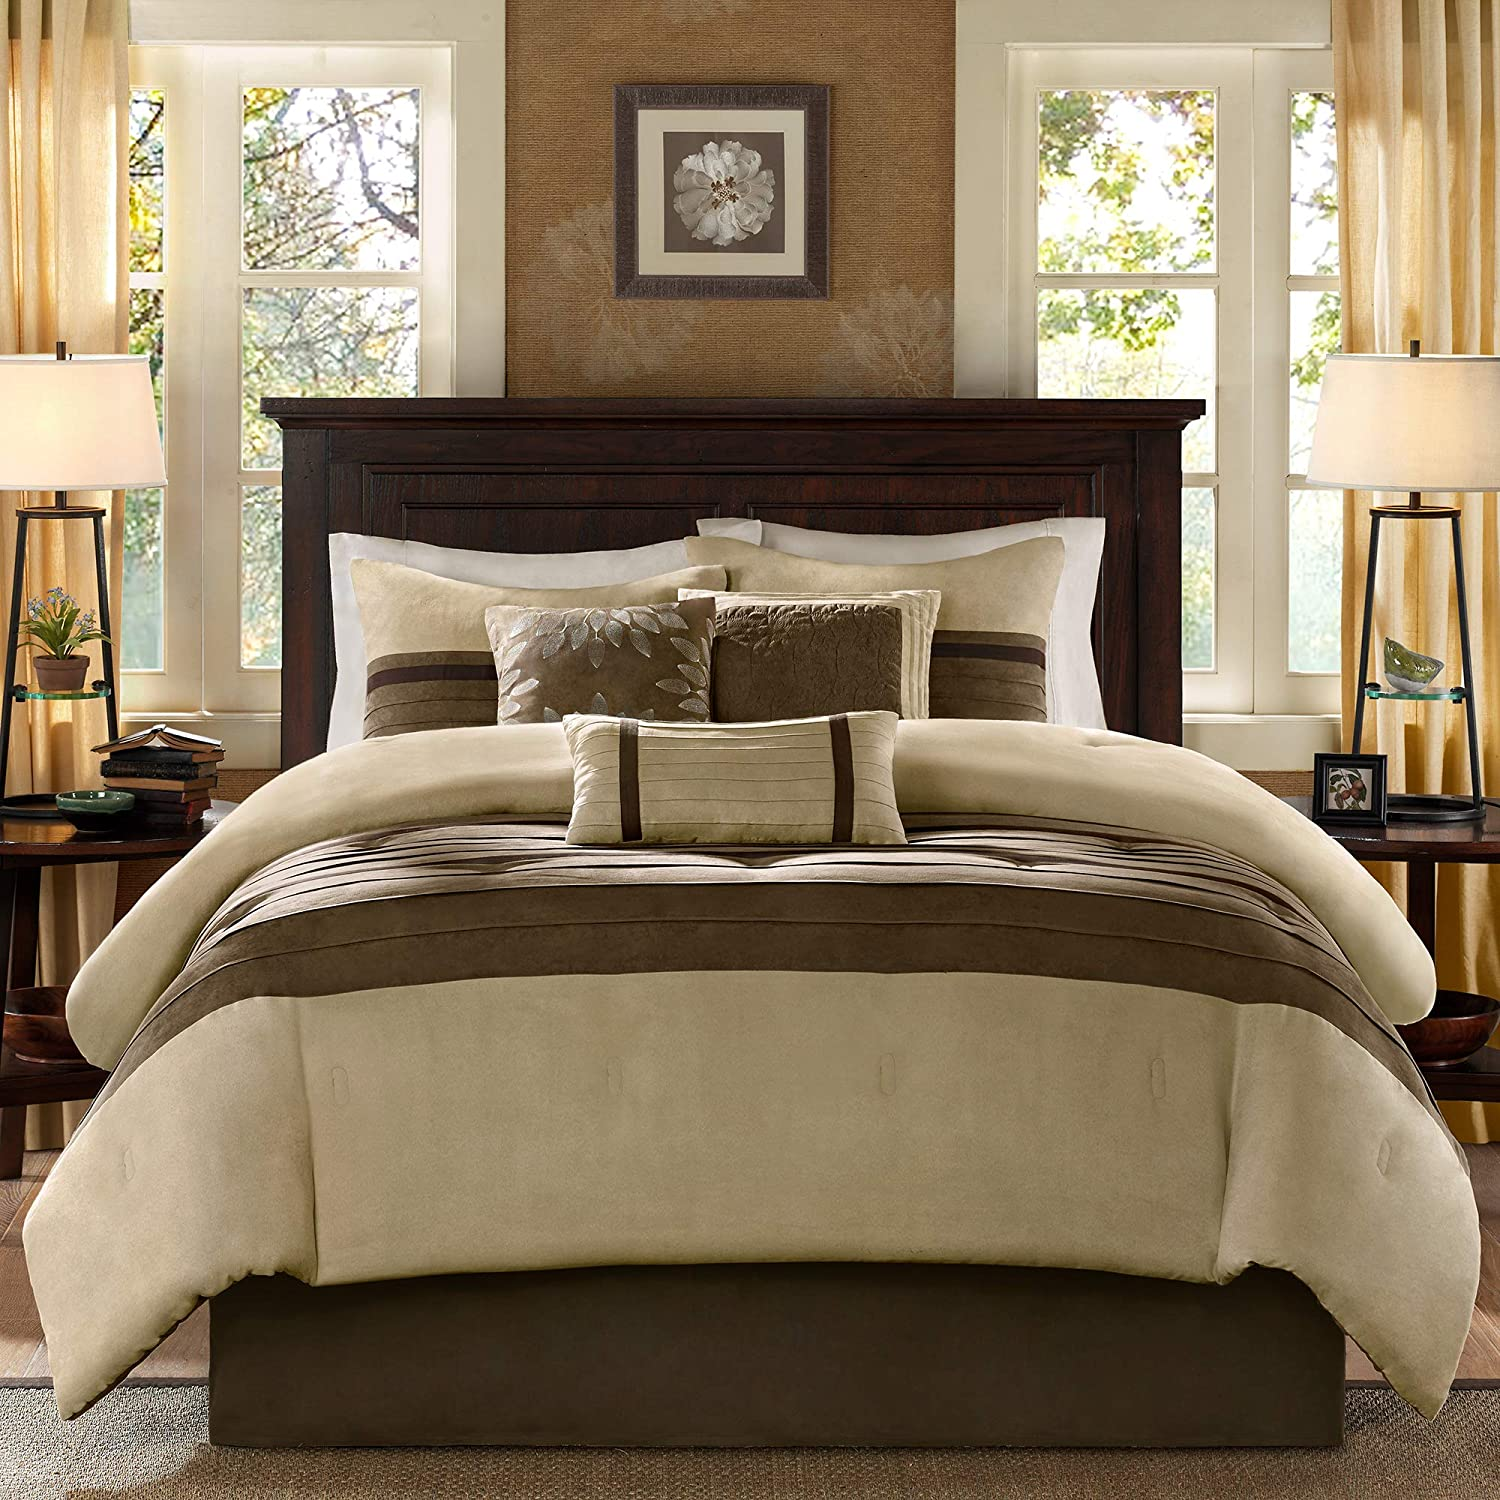 Madison Park - Palmer 7 Piece Comforter Set - Natural - Queen - Pieced Microsuede - Includes 1 Comforter, 3 Decorative Pillows, 1 Bed Skirt, 2 Shams: Home & Kitchen